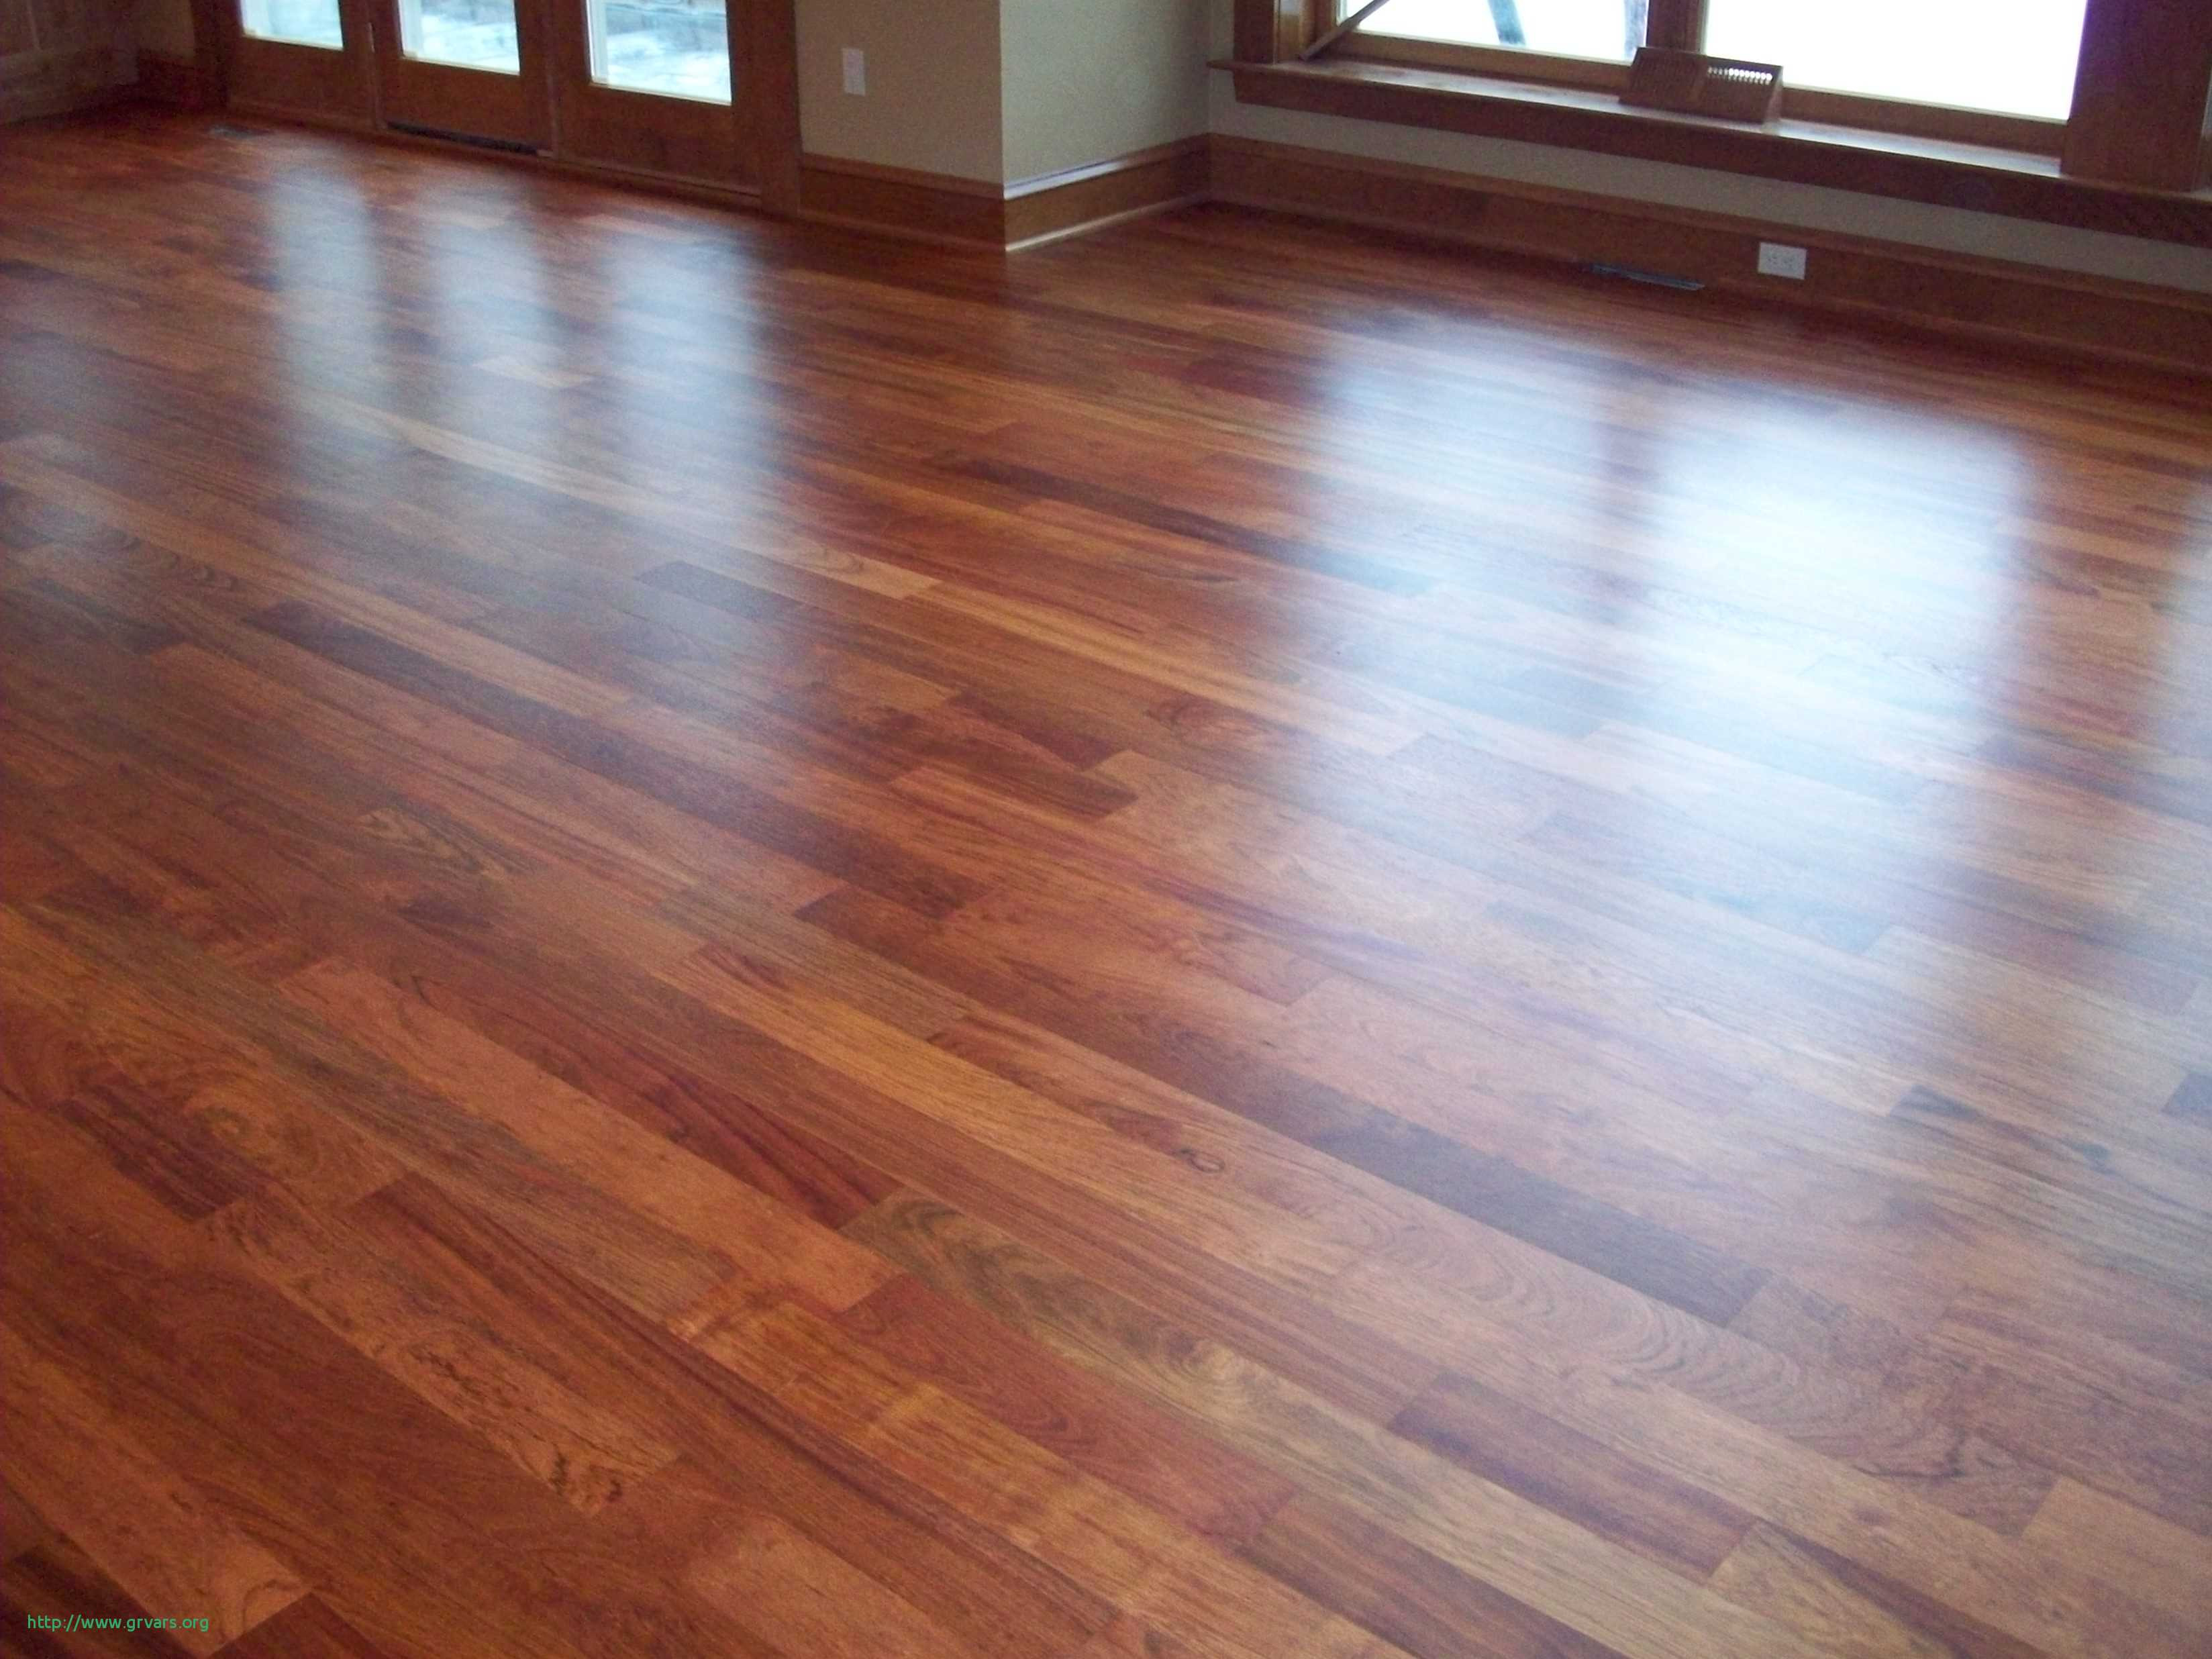 unfinished hardwood flooring ontario of 21 luxe how to disinfect hardwood floors naturally ideas blog within how to disinfect hardwood floors naturally impressionnant beautiful discount hardwood flooring 15 steam clean floors best